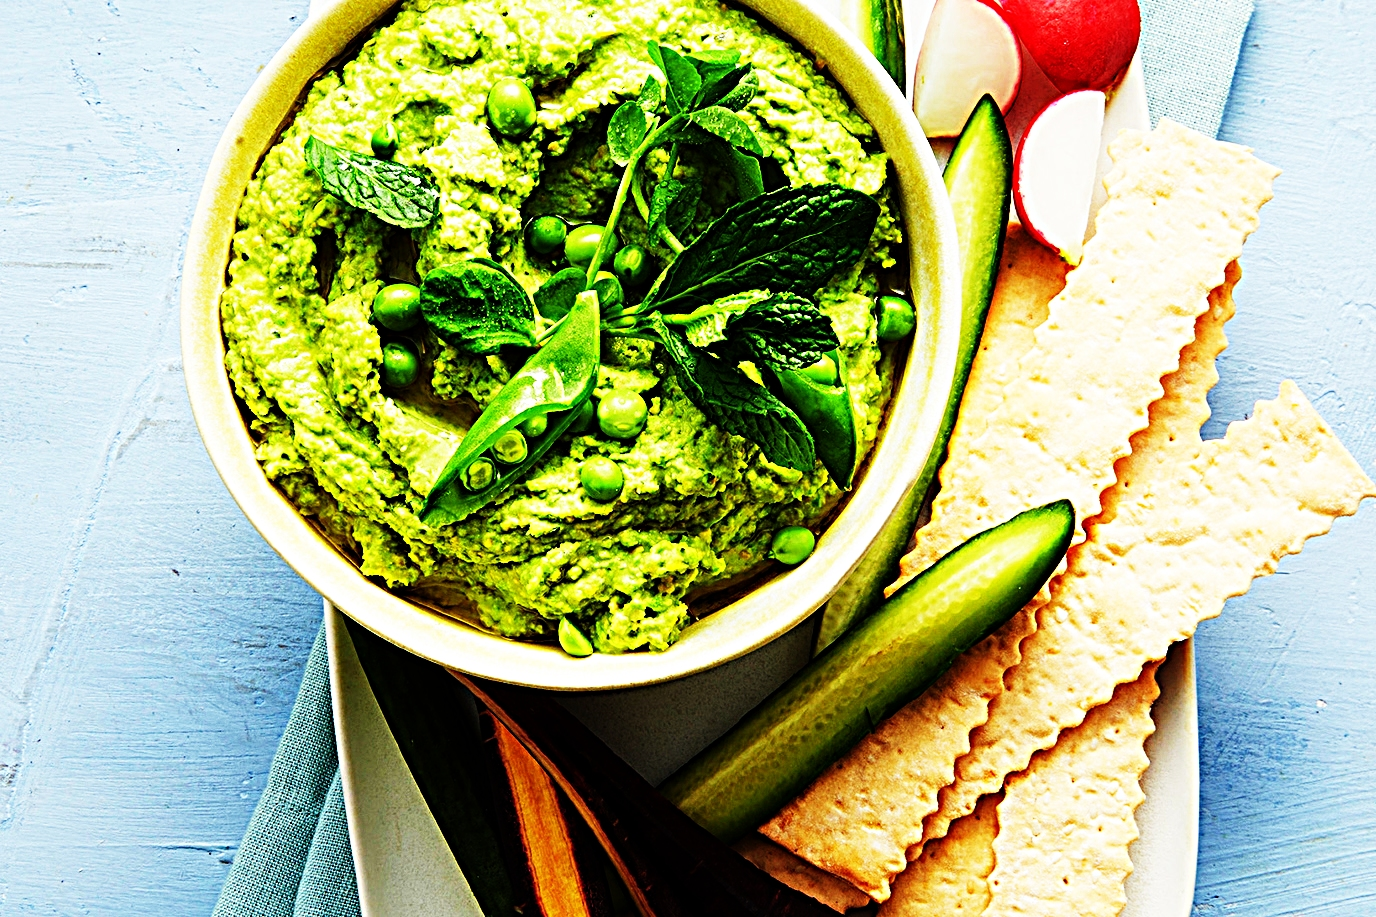 Stupid-Easy Recipe for Green Pea & Mint Hummus (#1 Top-Rated)